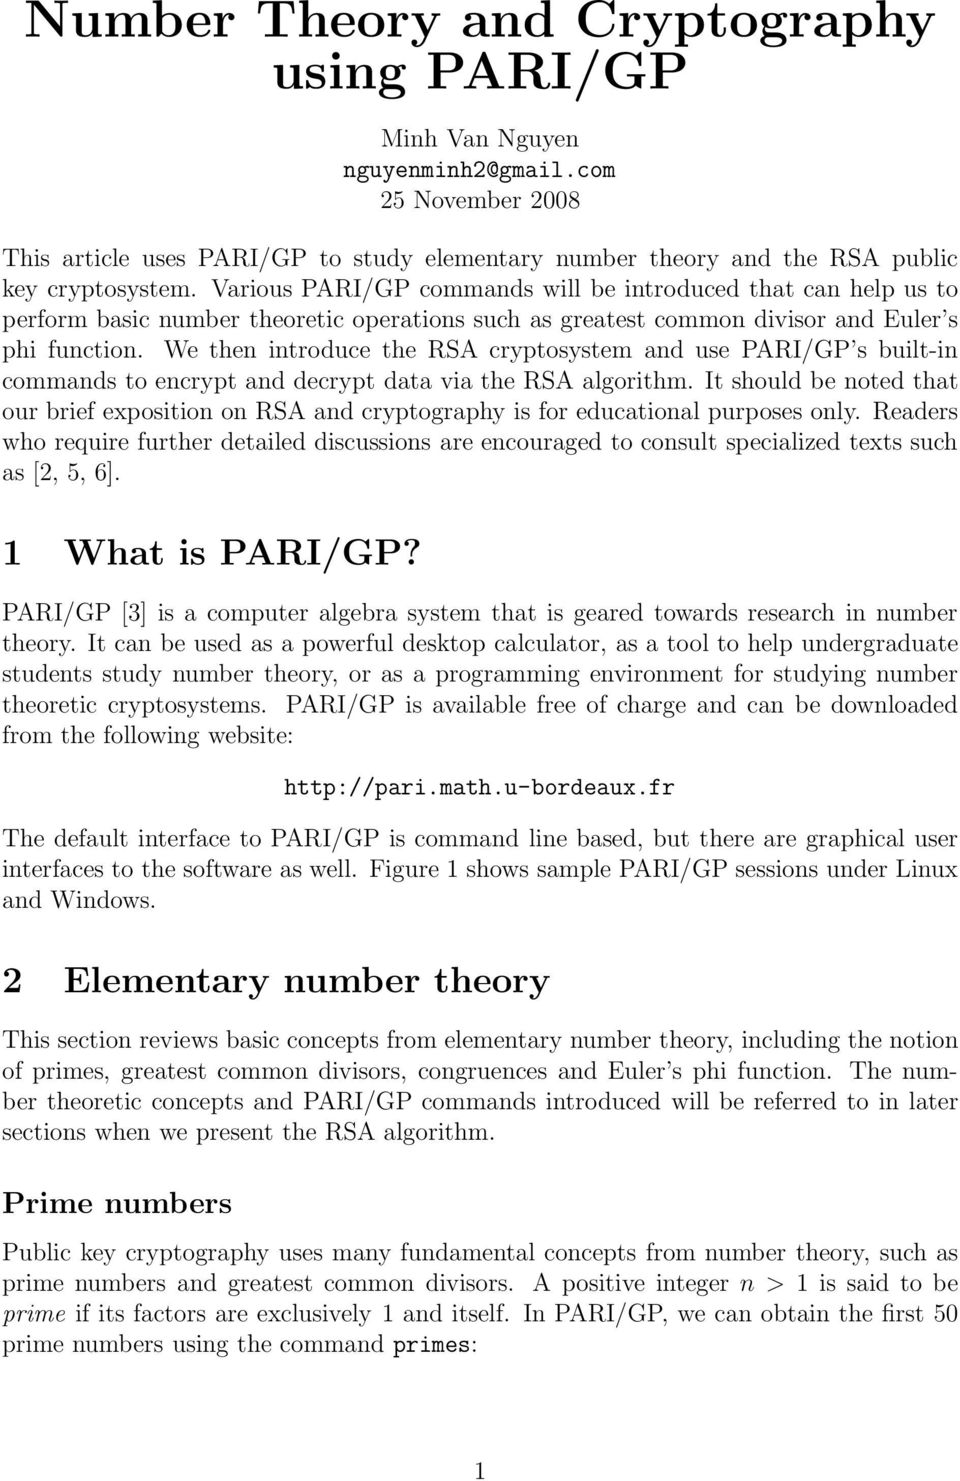 Number Theory and Cryptography using PARI/GP - PDF